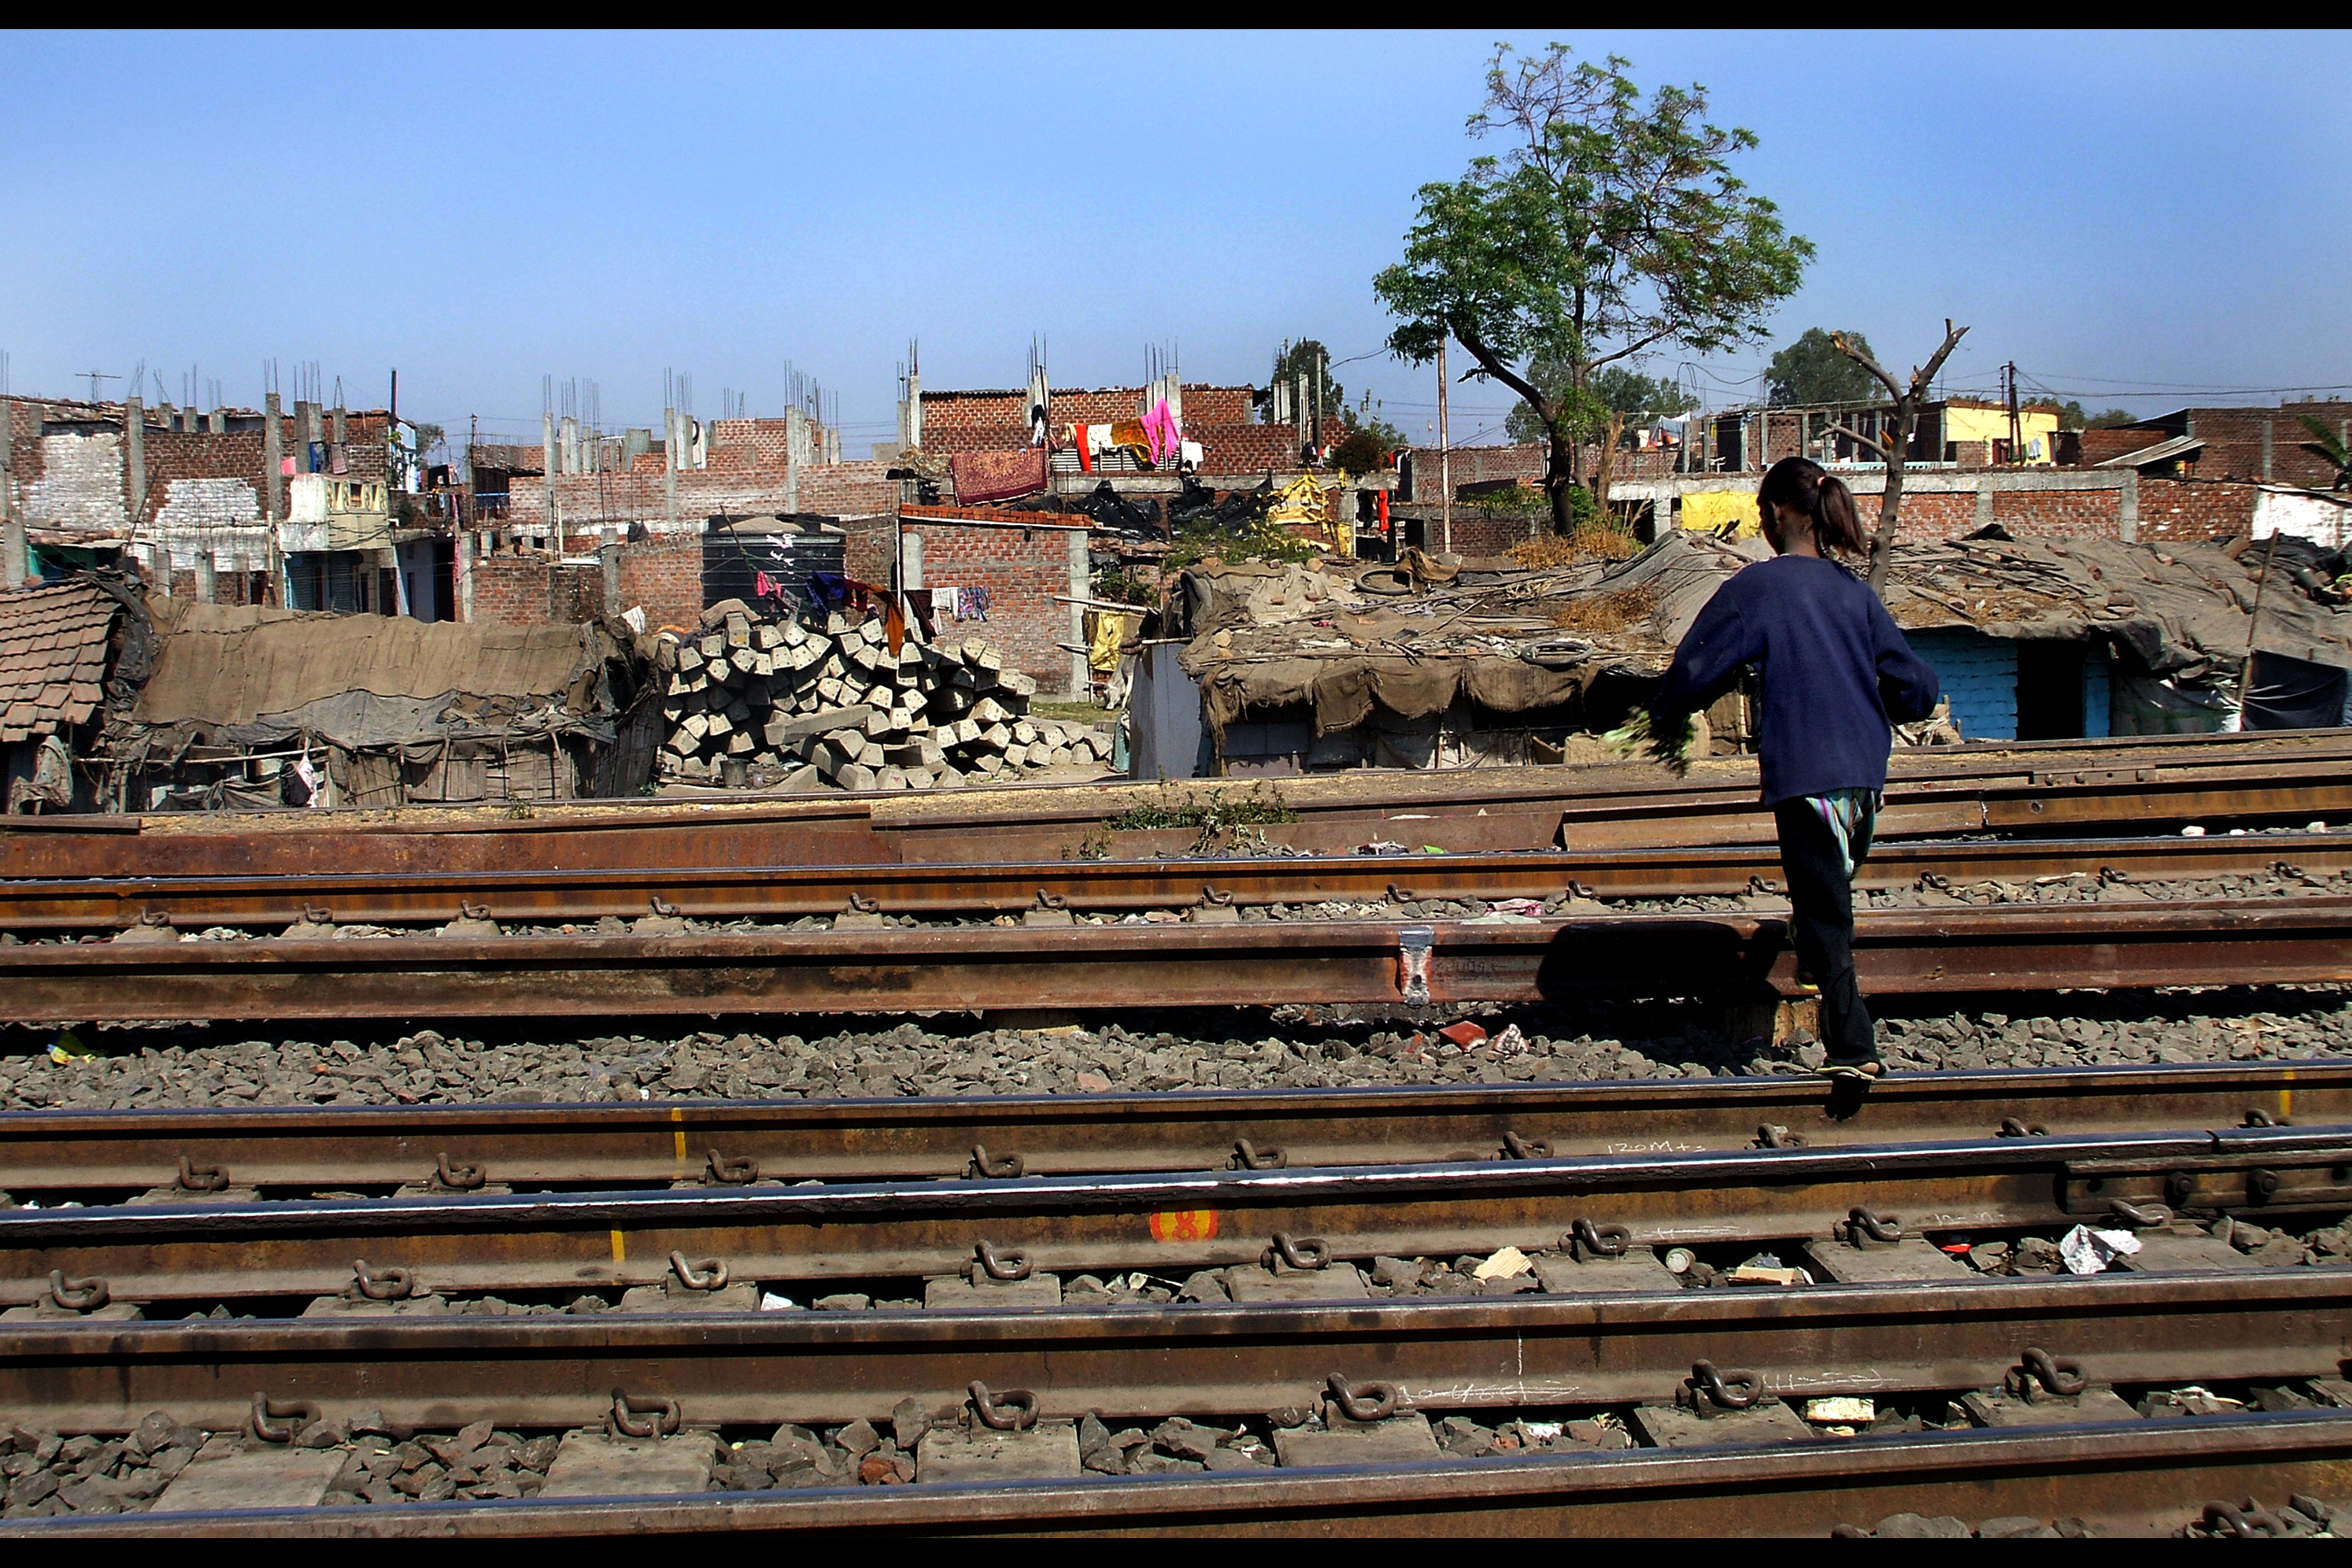 the bhopal disaster The bhopal accident gavin lee sfwr eng 3j03 march 14, 2003 presentation layout background information the bhopal disaster  the bhopal disaster mic tank 610 was checked out the ground around the tank was unstable 40 tons of deadly gases suddenly burst out into the atmosphere workers fled in panic.